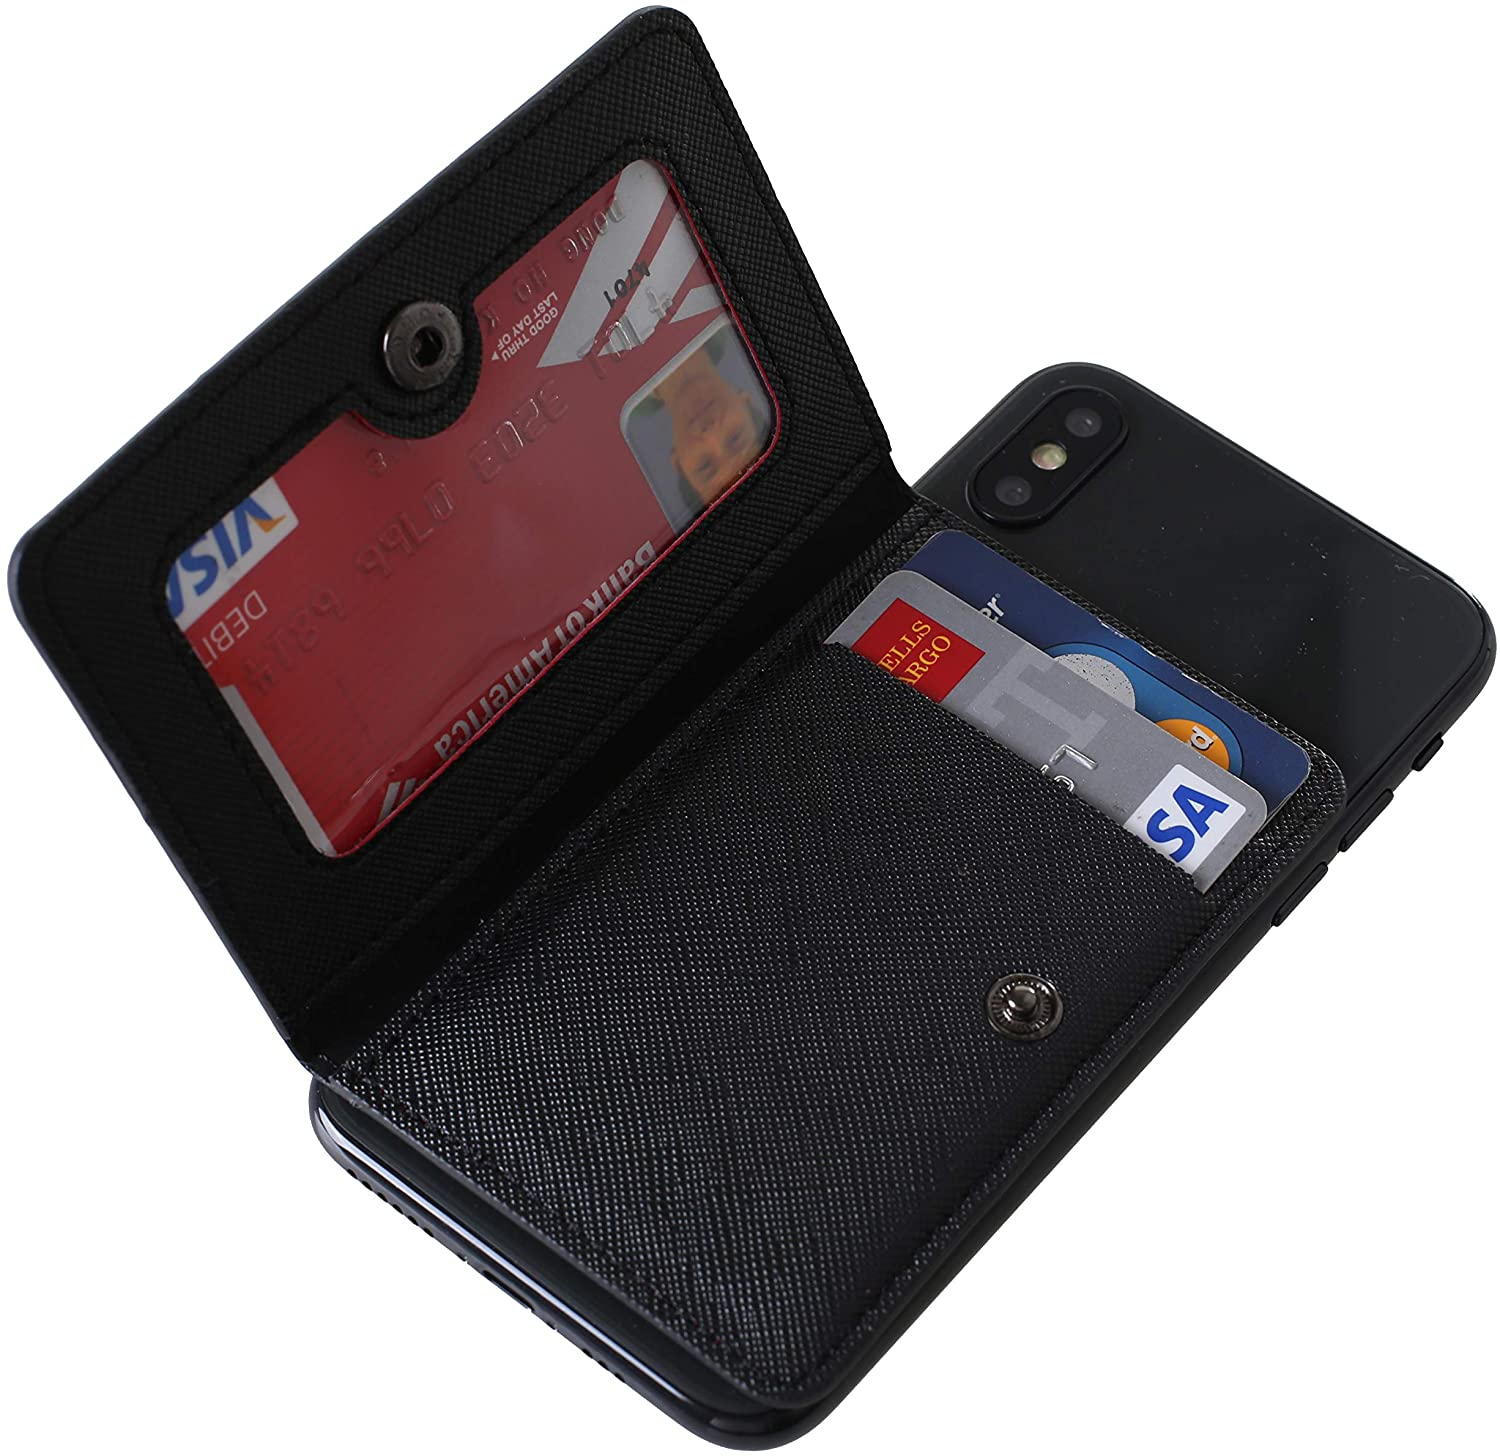 CheapSunday ID Card Holder for Back of Phone Leather Phone Wallet Stick On with Stand Flip Waterproof Leather Adhesive Wallet for Most Cellphones (Black)